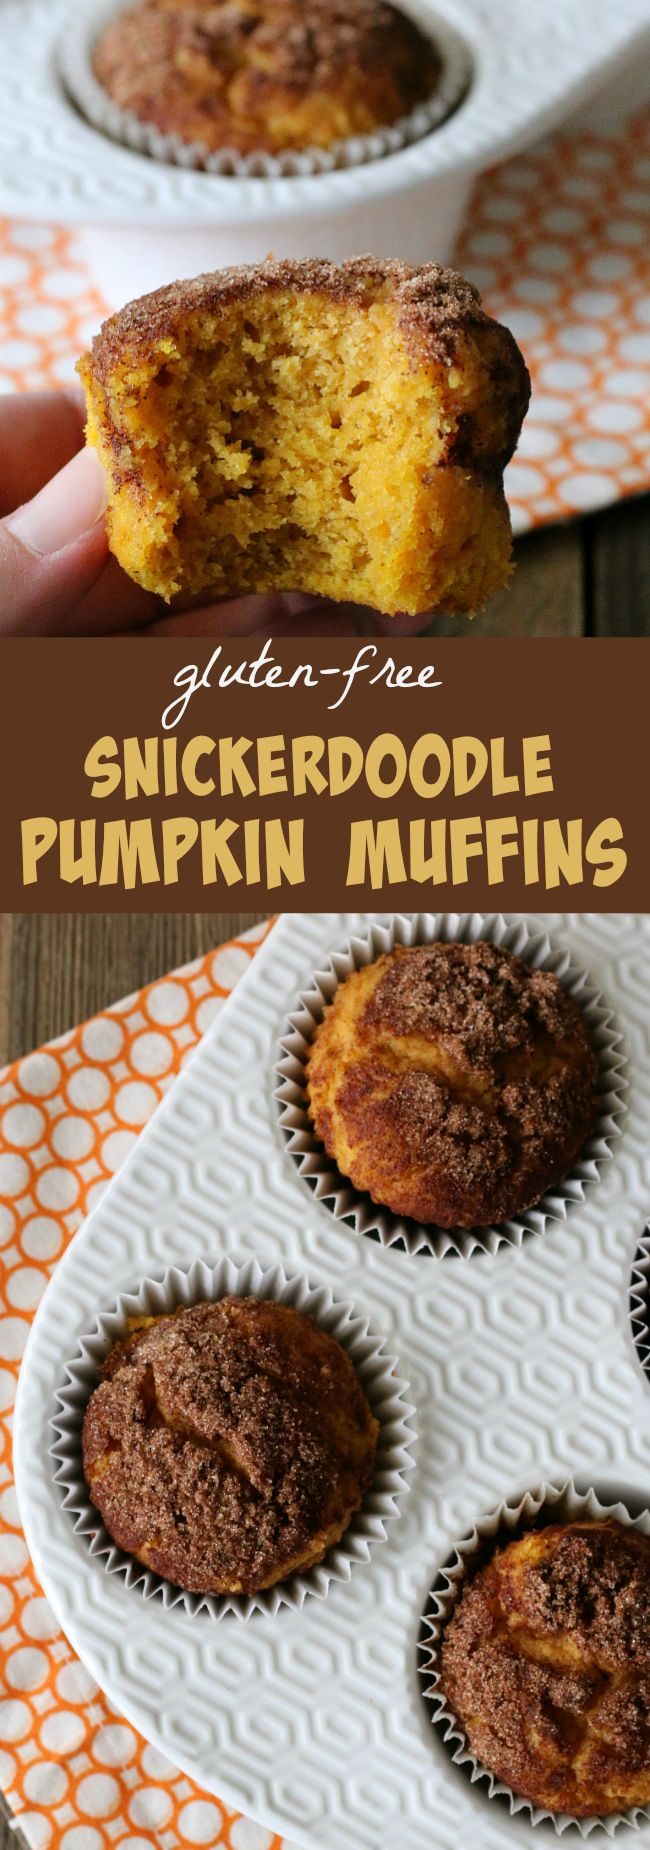 Gluten-free Snickerdoodle Pumpkin Muffins Recipe yummy and easy! My favorite pumpkin muffins ever!  #glutenfreerecipe #glutenfreemuffins